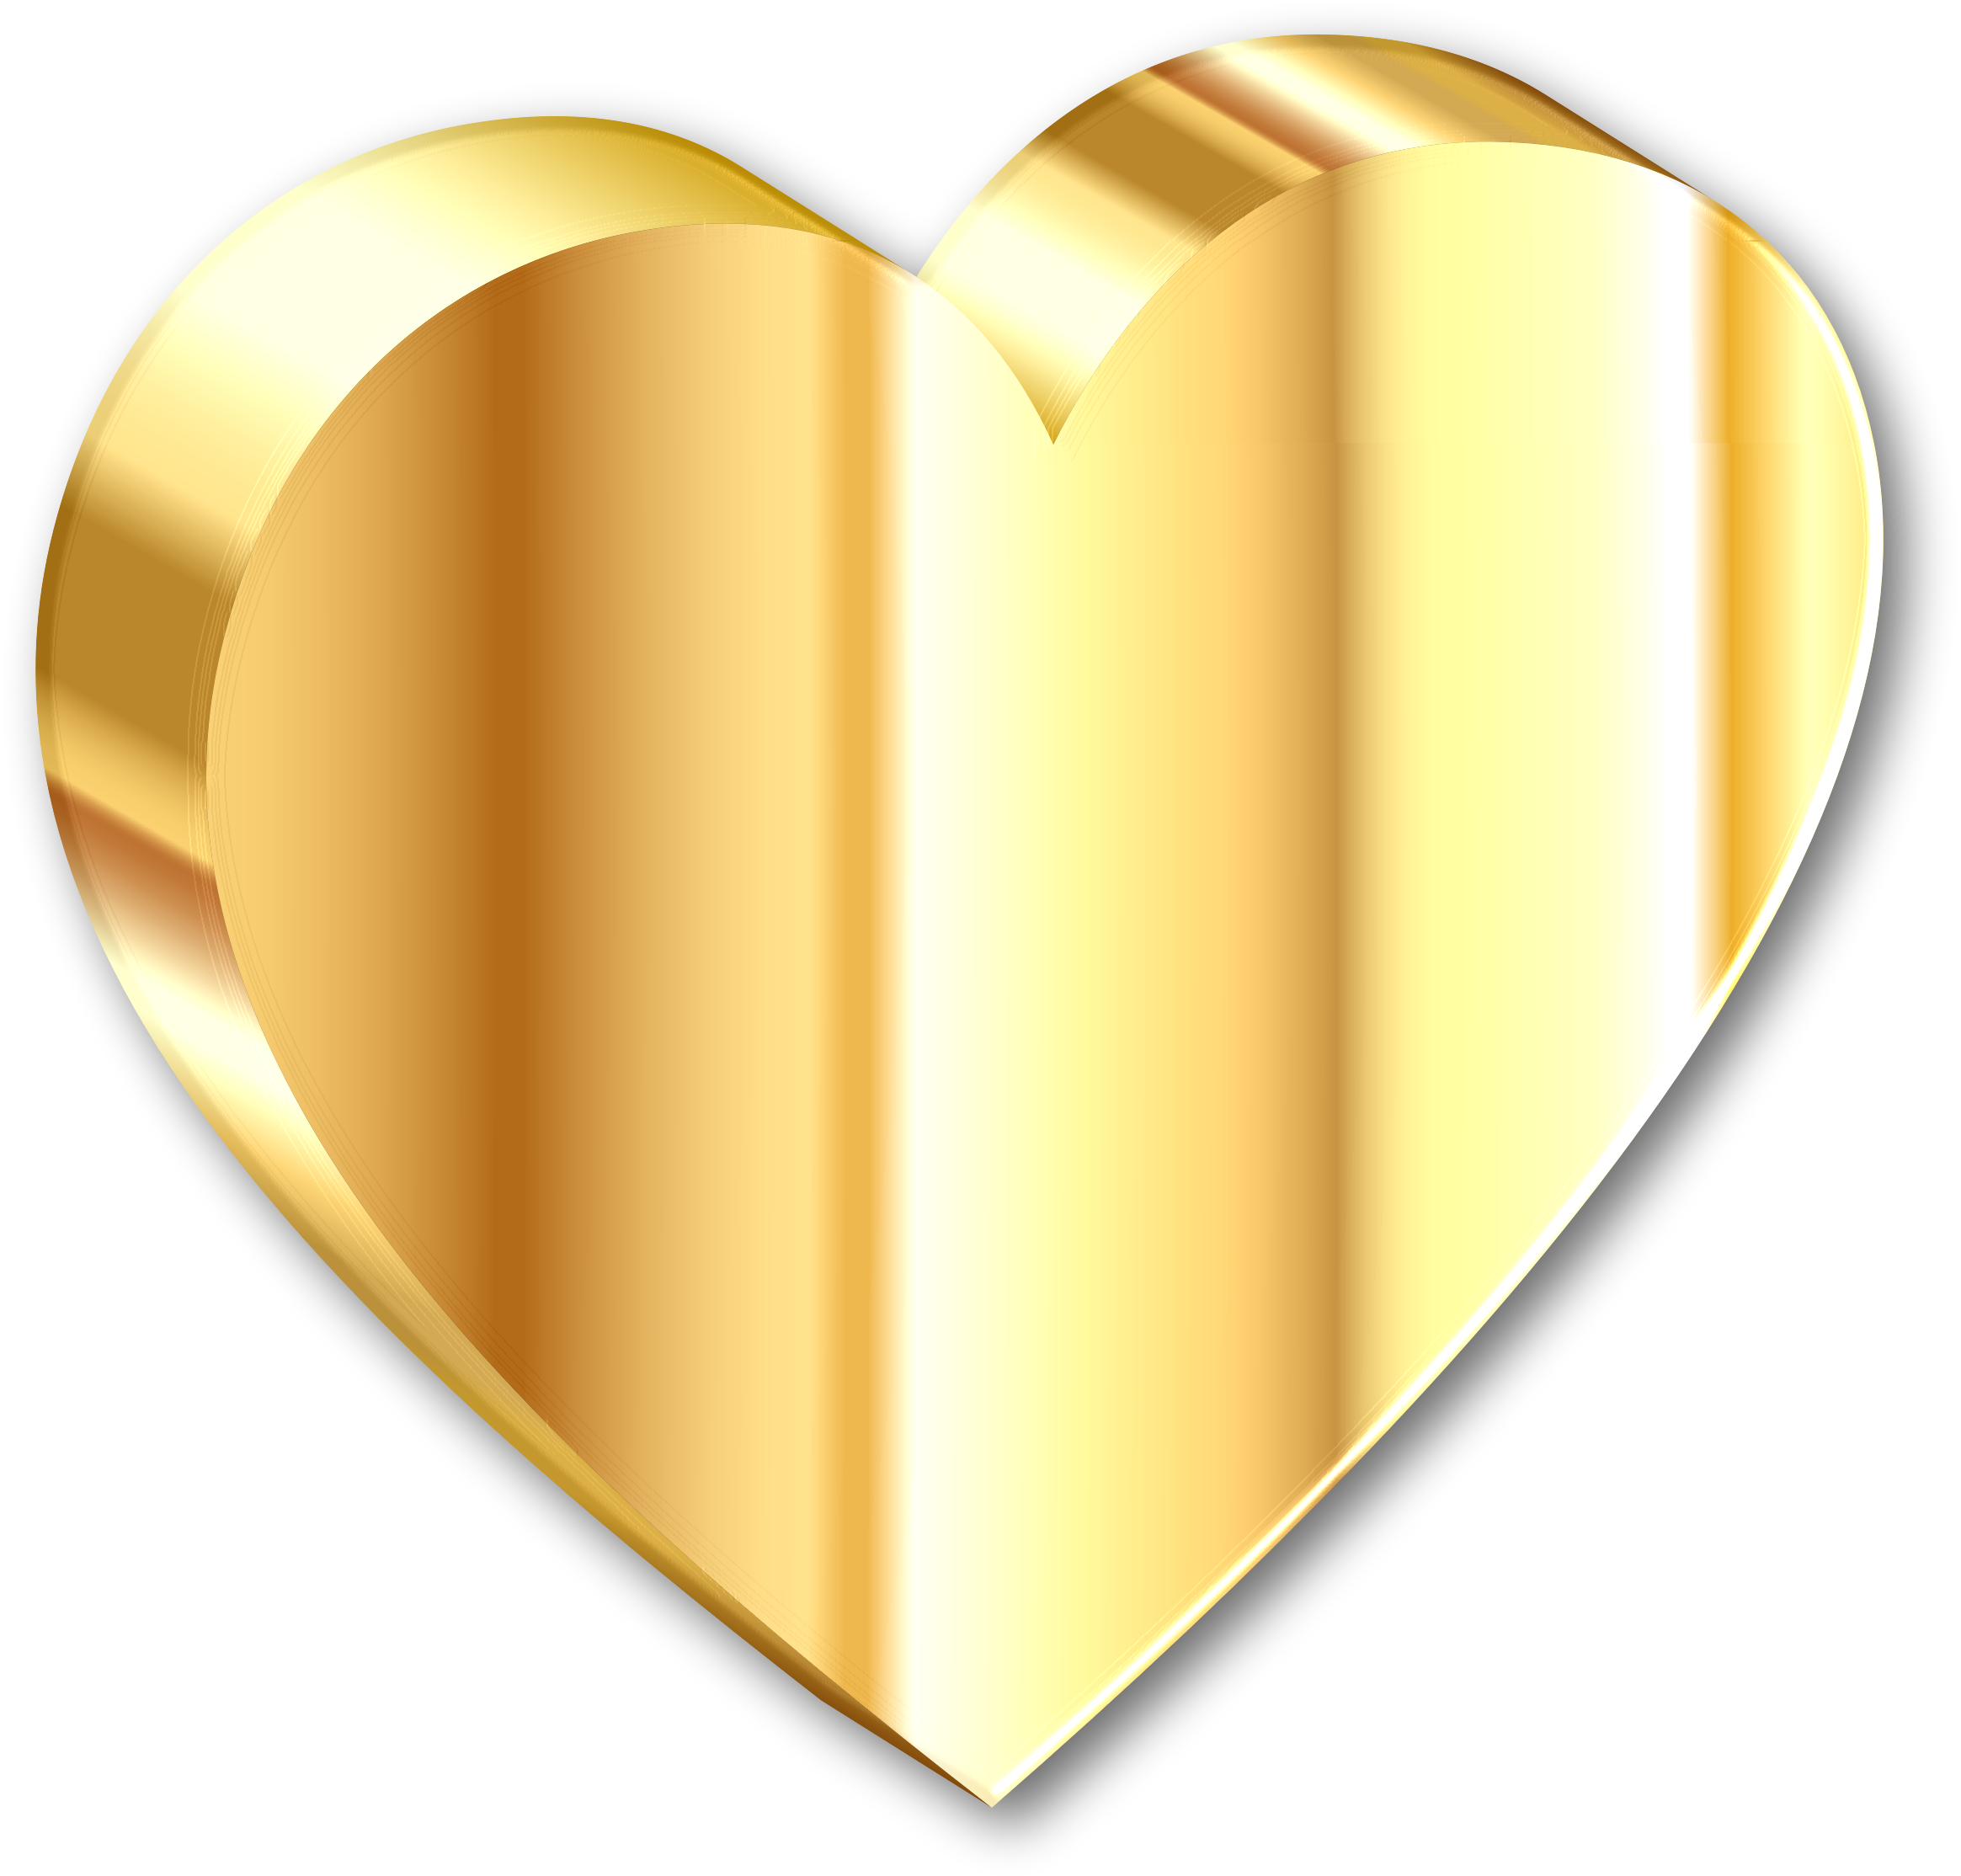 3D Heart Of Gold With Shadow by GDJ